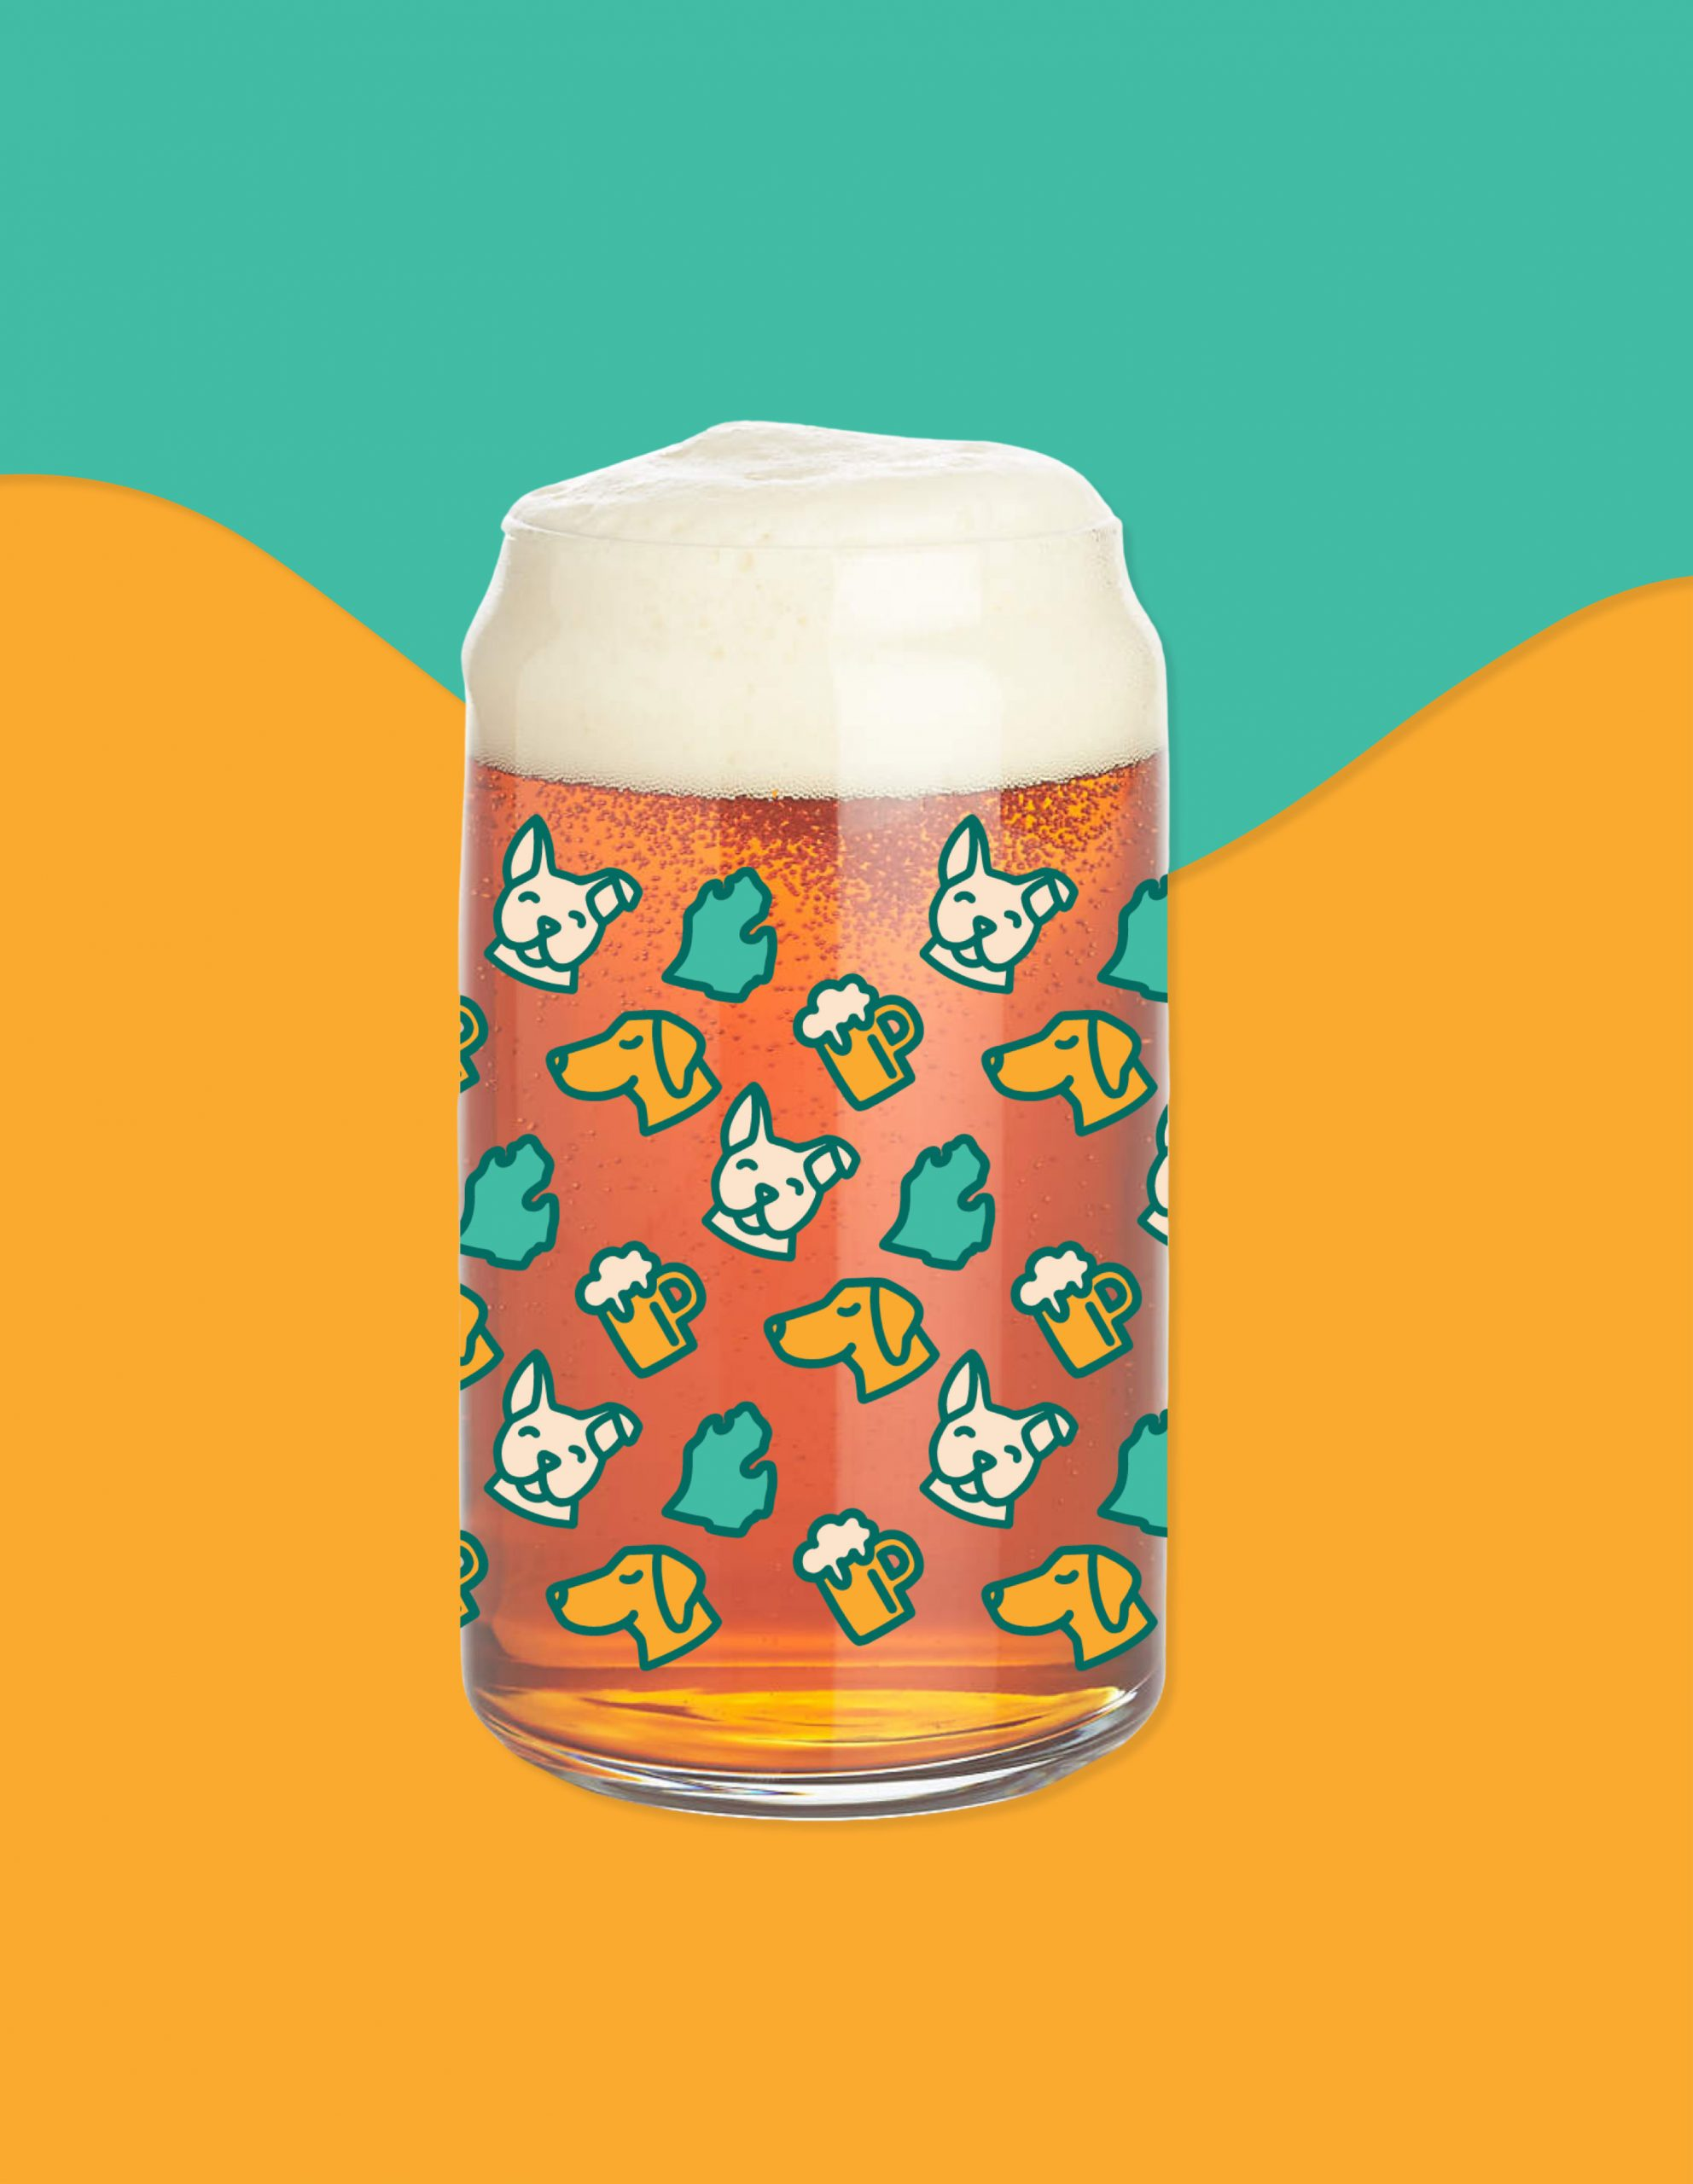 Dog, beer, Michigan pattern on beer mug